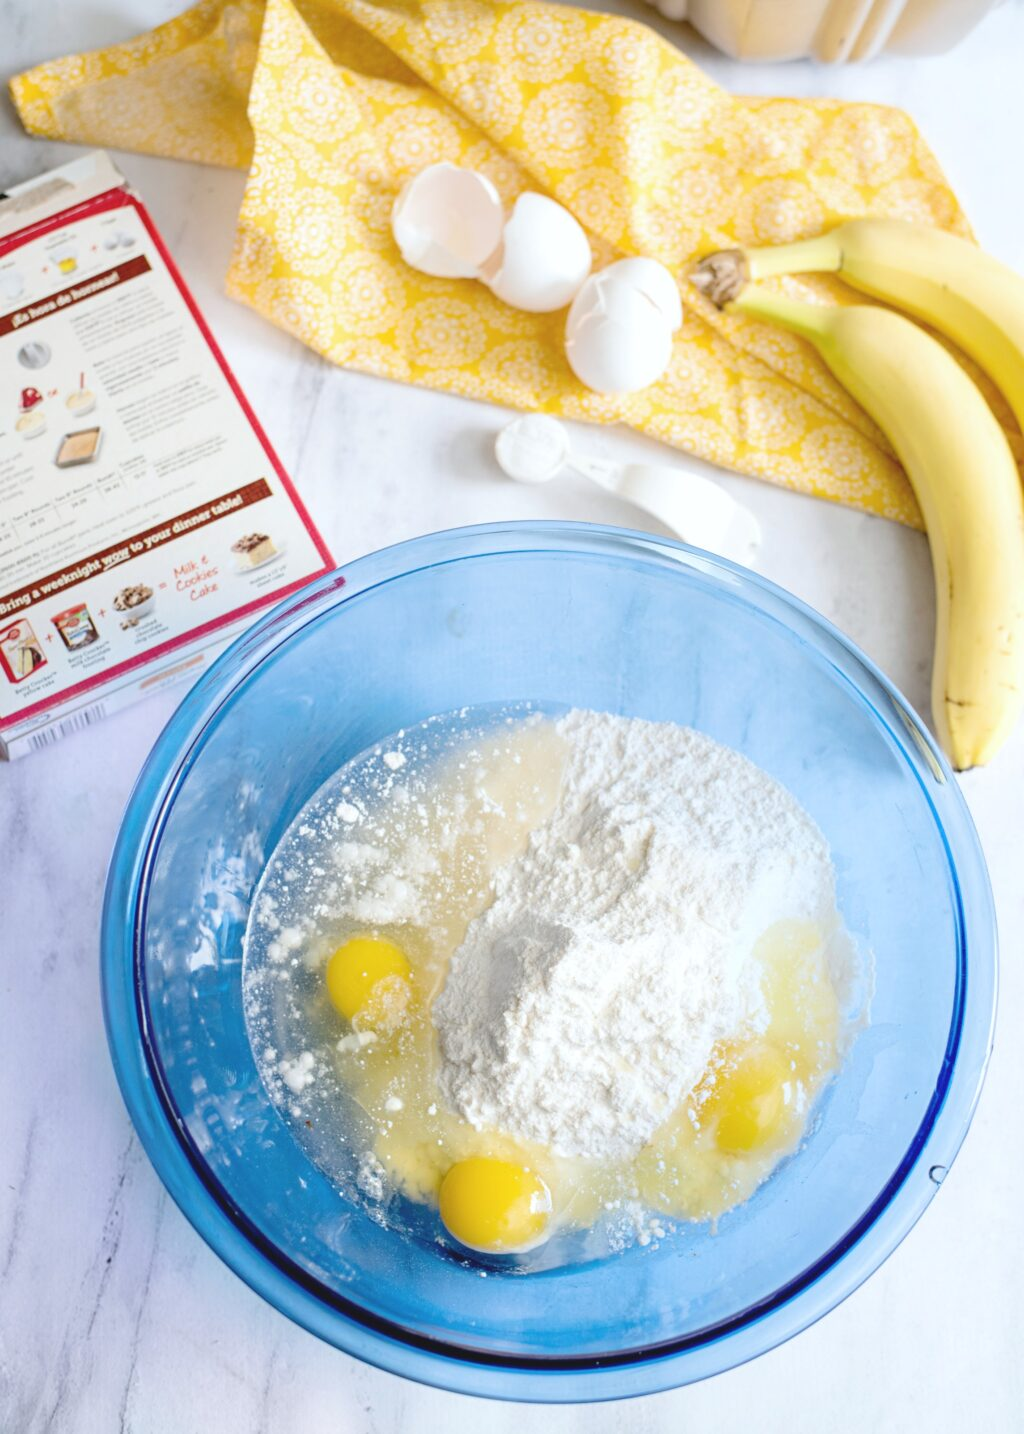 A blue bowl with wet and dry baking ingredients. Banana and eggs rest on a napkin.